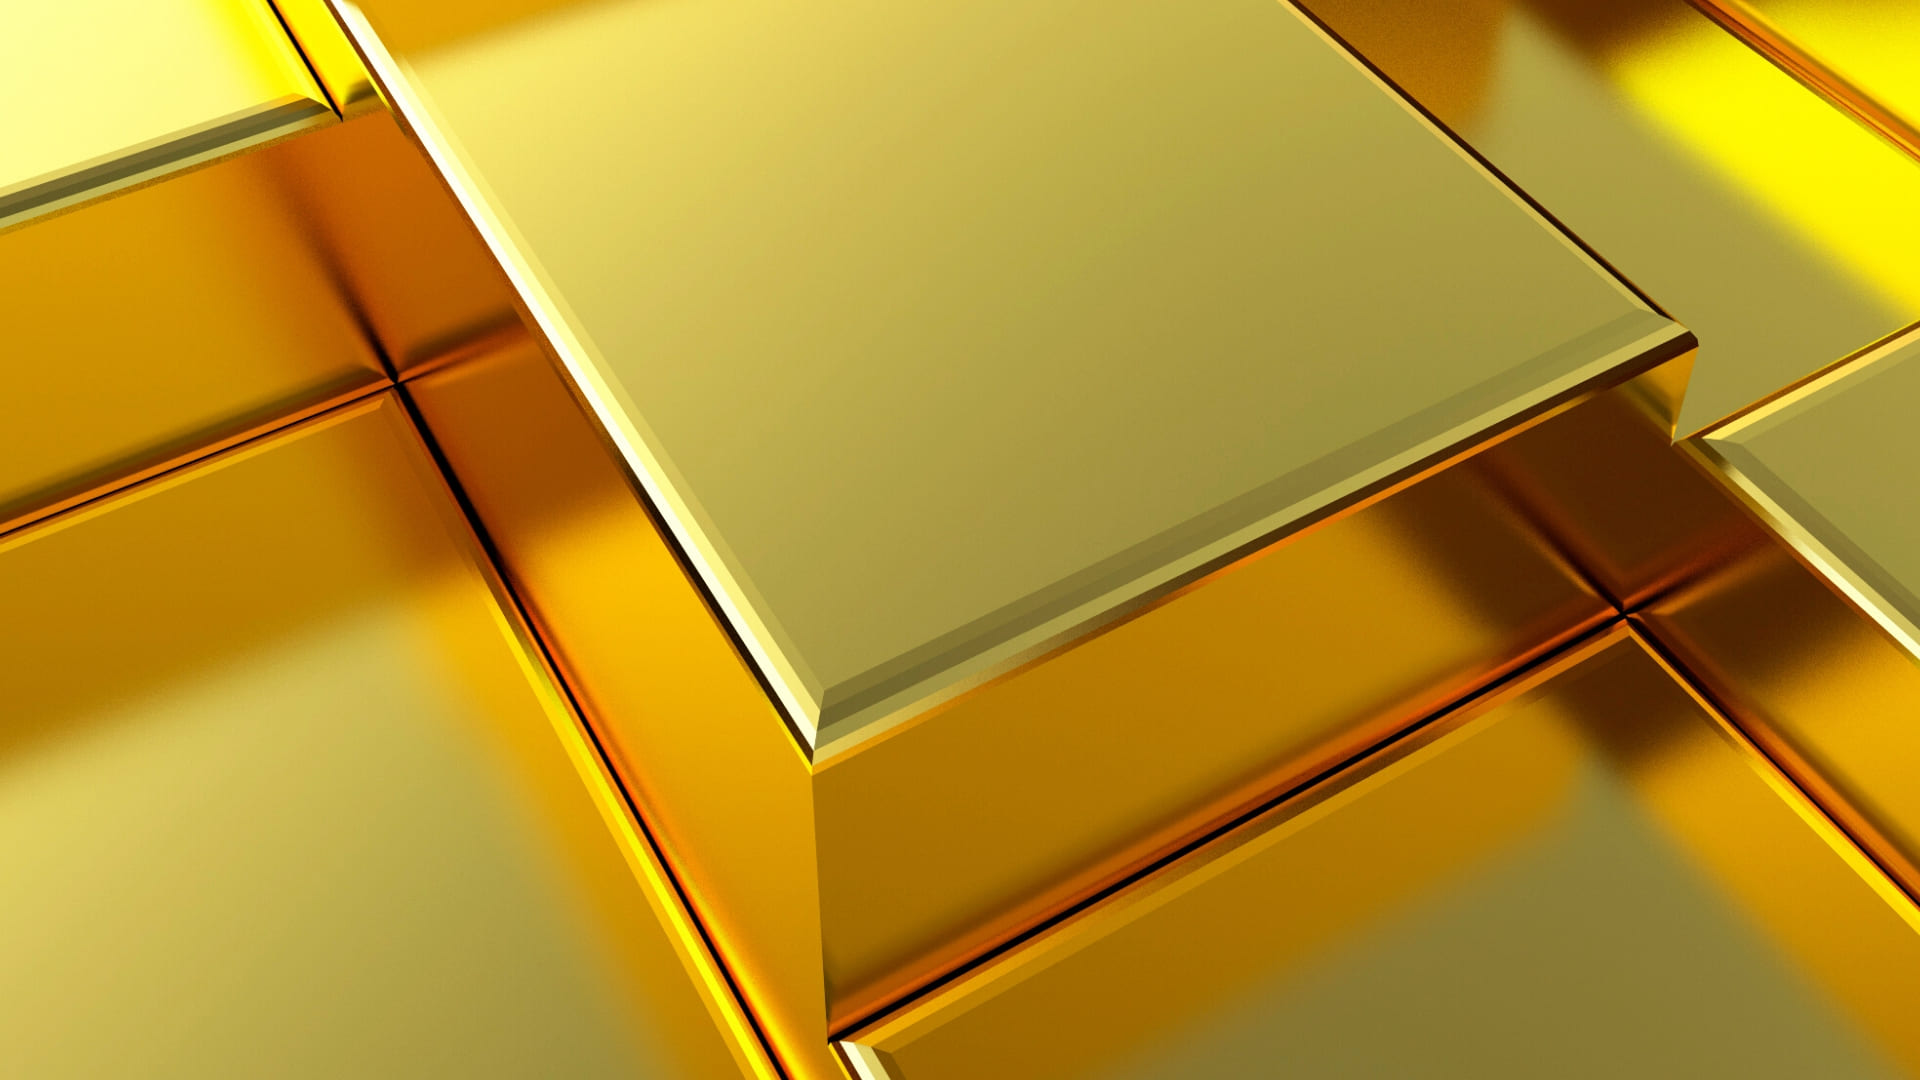 Gold Background wallpapers